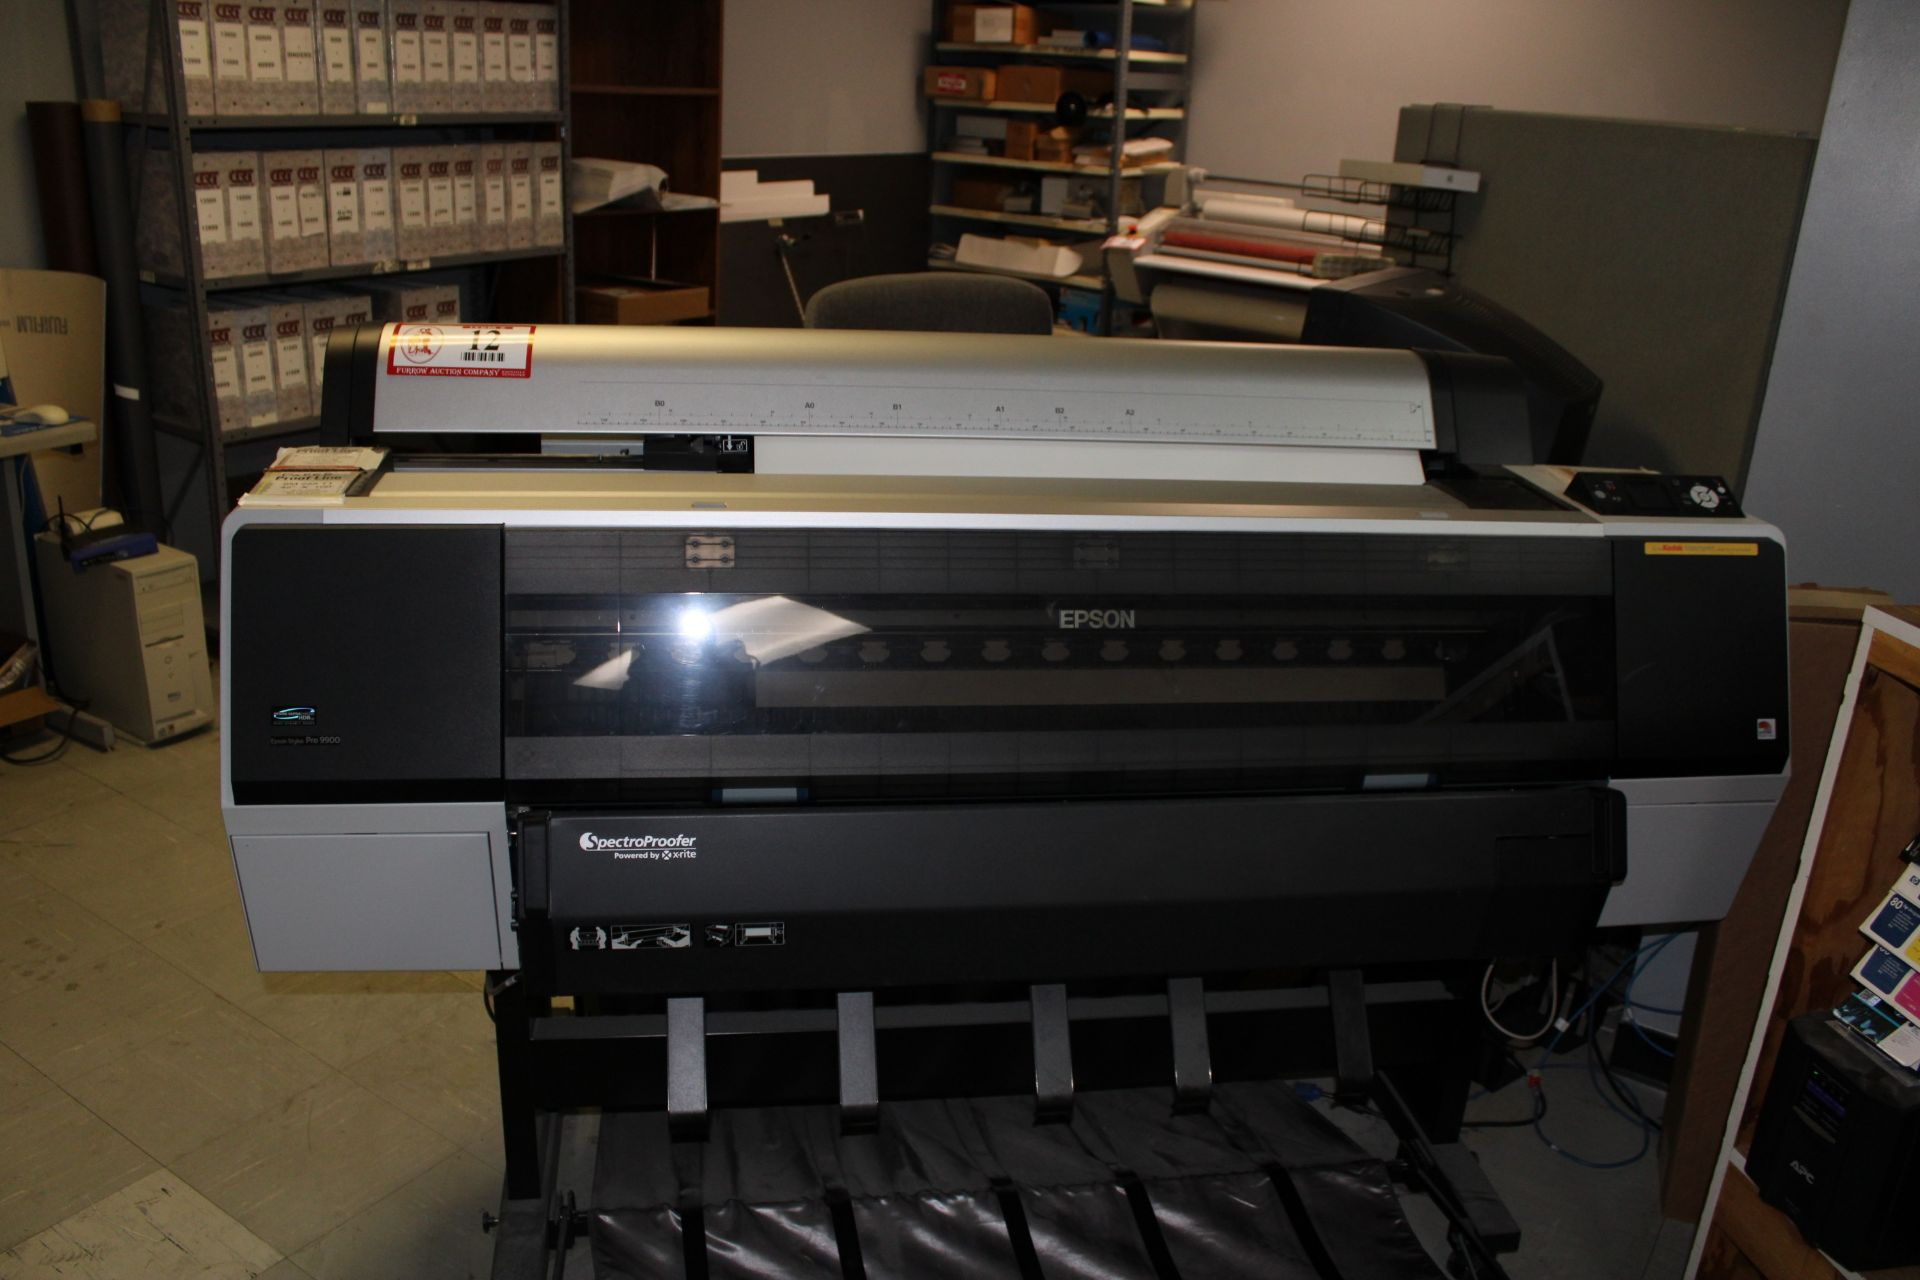 Lot 12 - EPSON Stylus Pro 9900 Wide Format Printer w/ Spectral Proofer Powered by X-Rite- Includes Dell